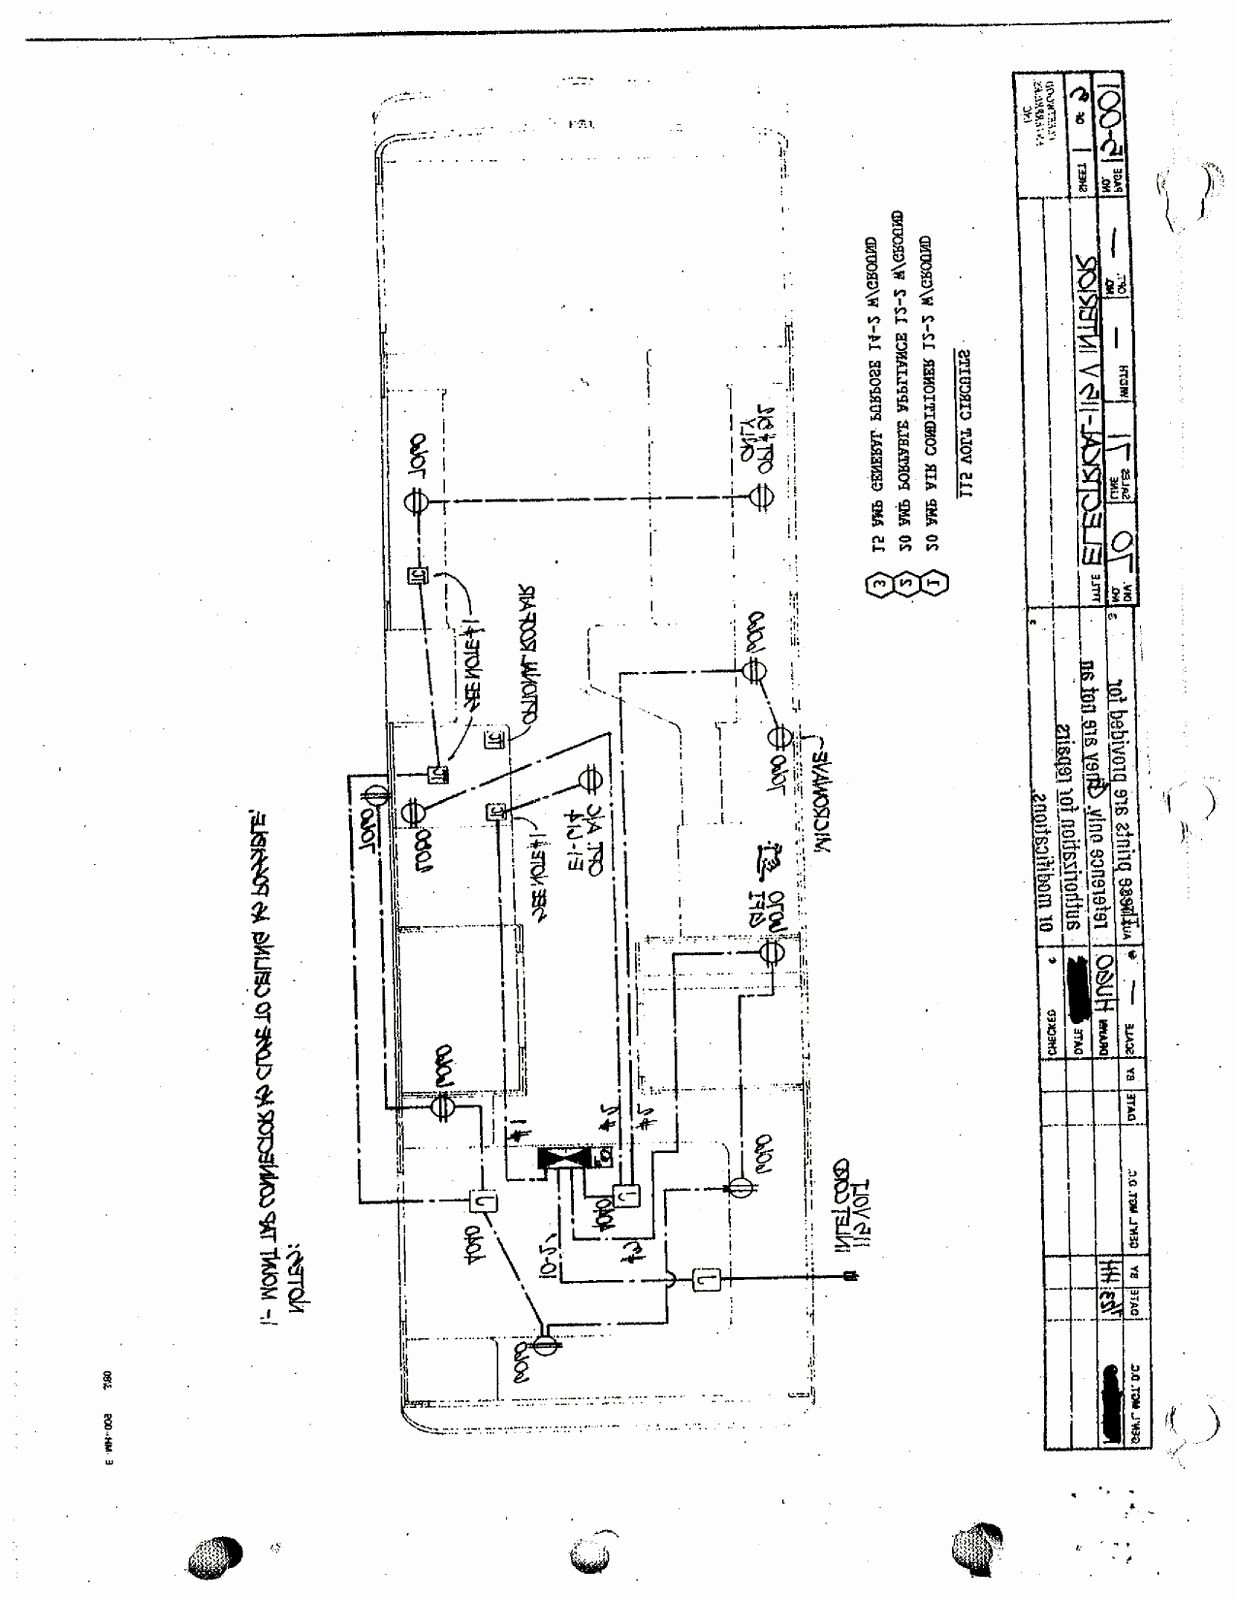 hight resolution of fleetwood rv house battery wiring wiring diagram fleetwood motorhome wiring diagram